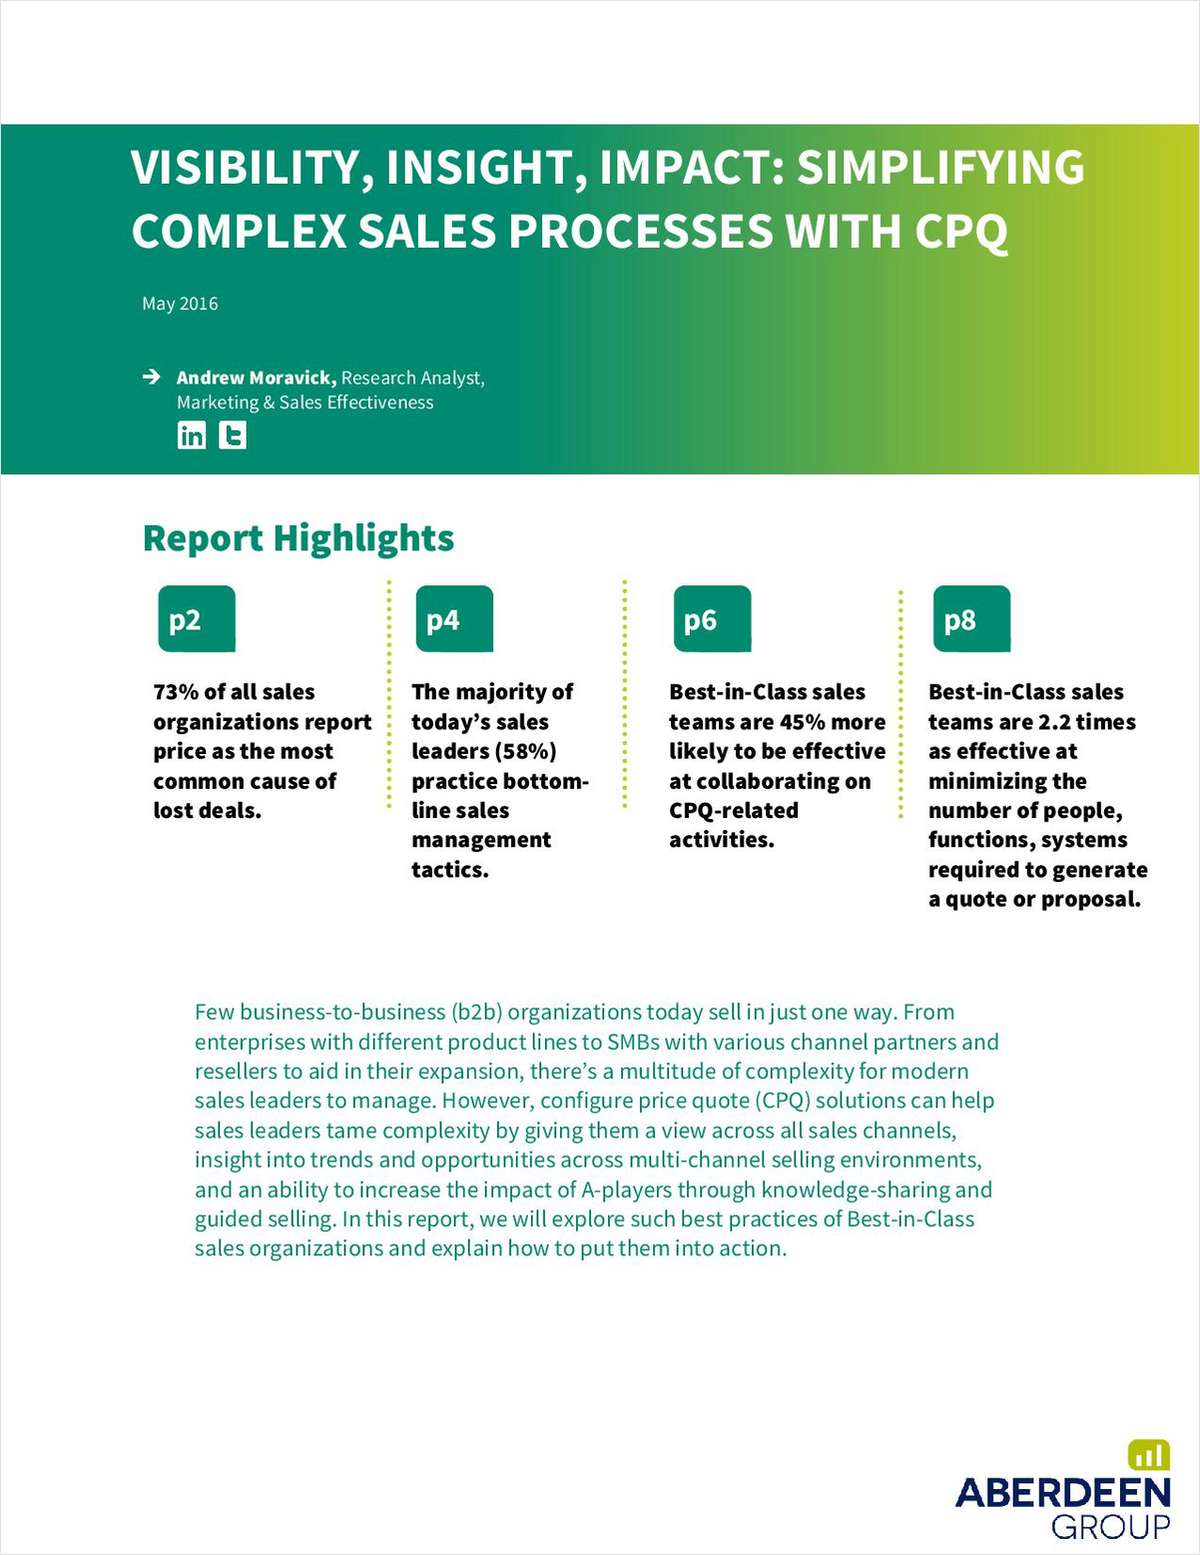 Aberdeen Report: Here's How Best-In-Class Organizations are Simplifying Complex Sales Processes